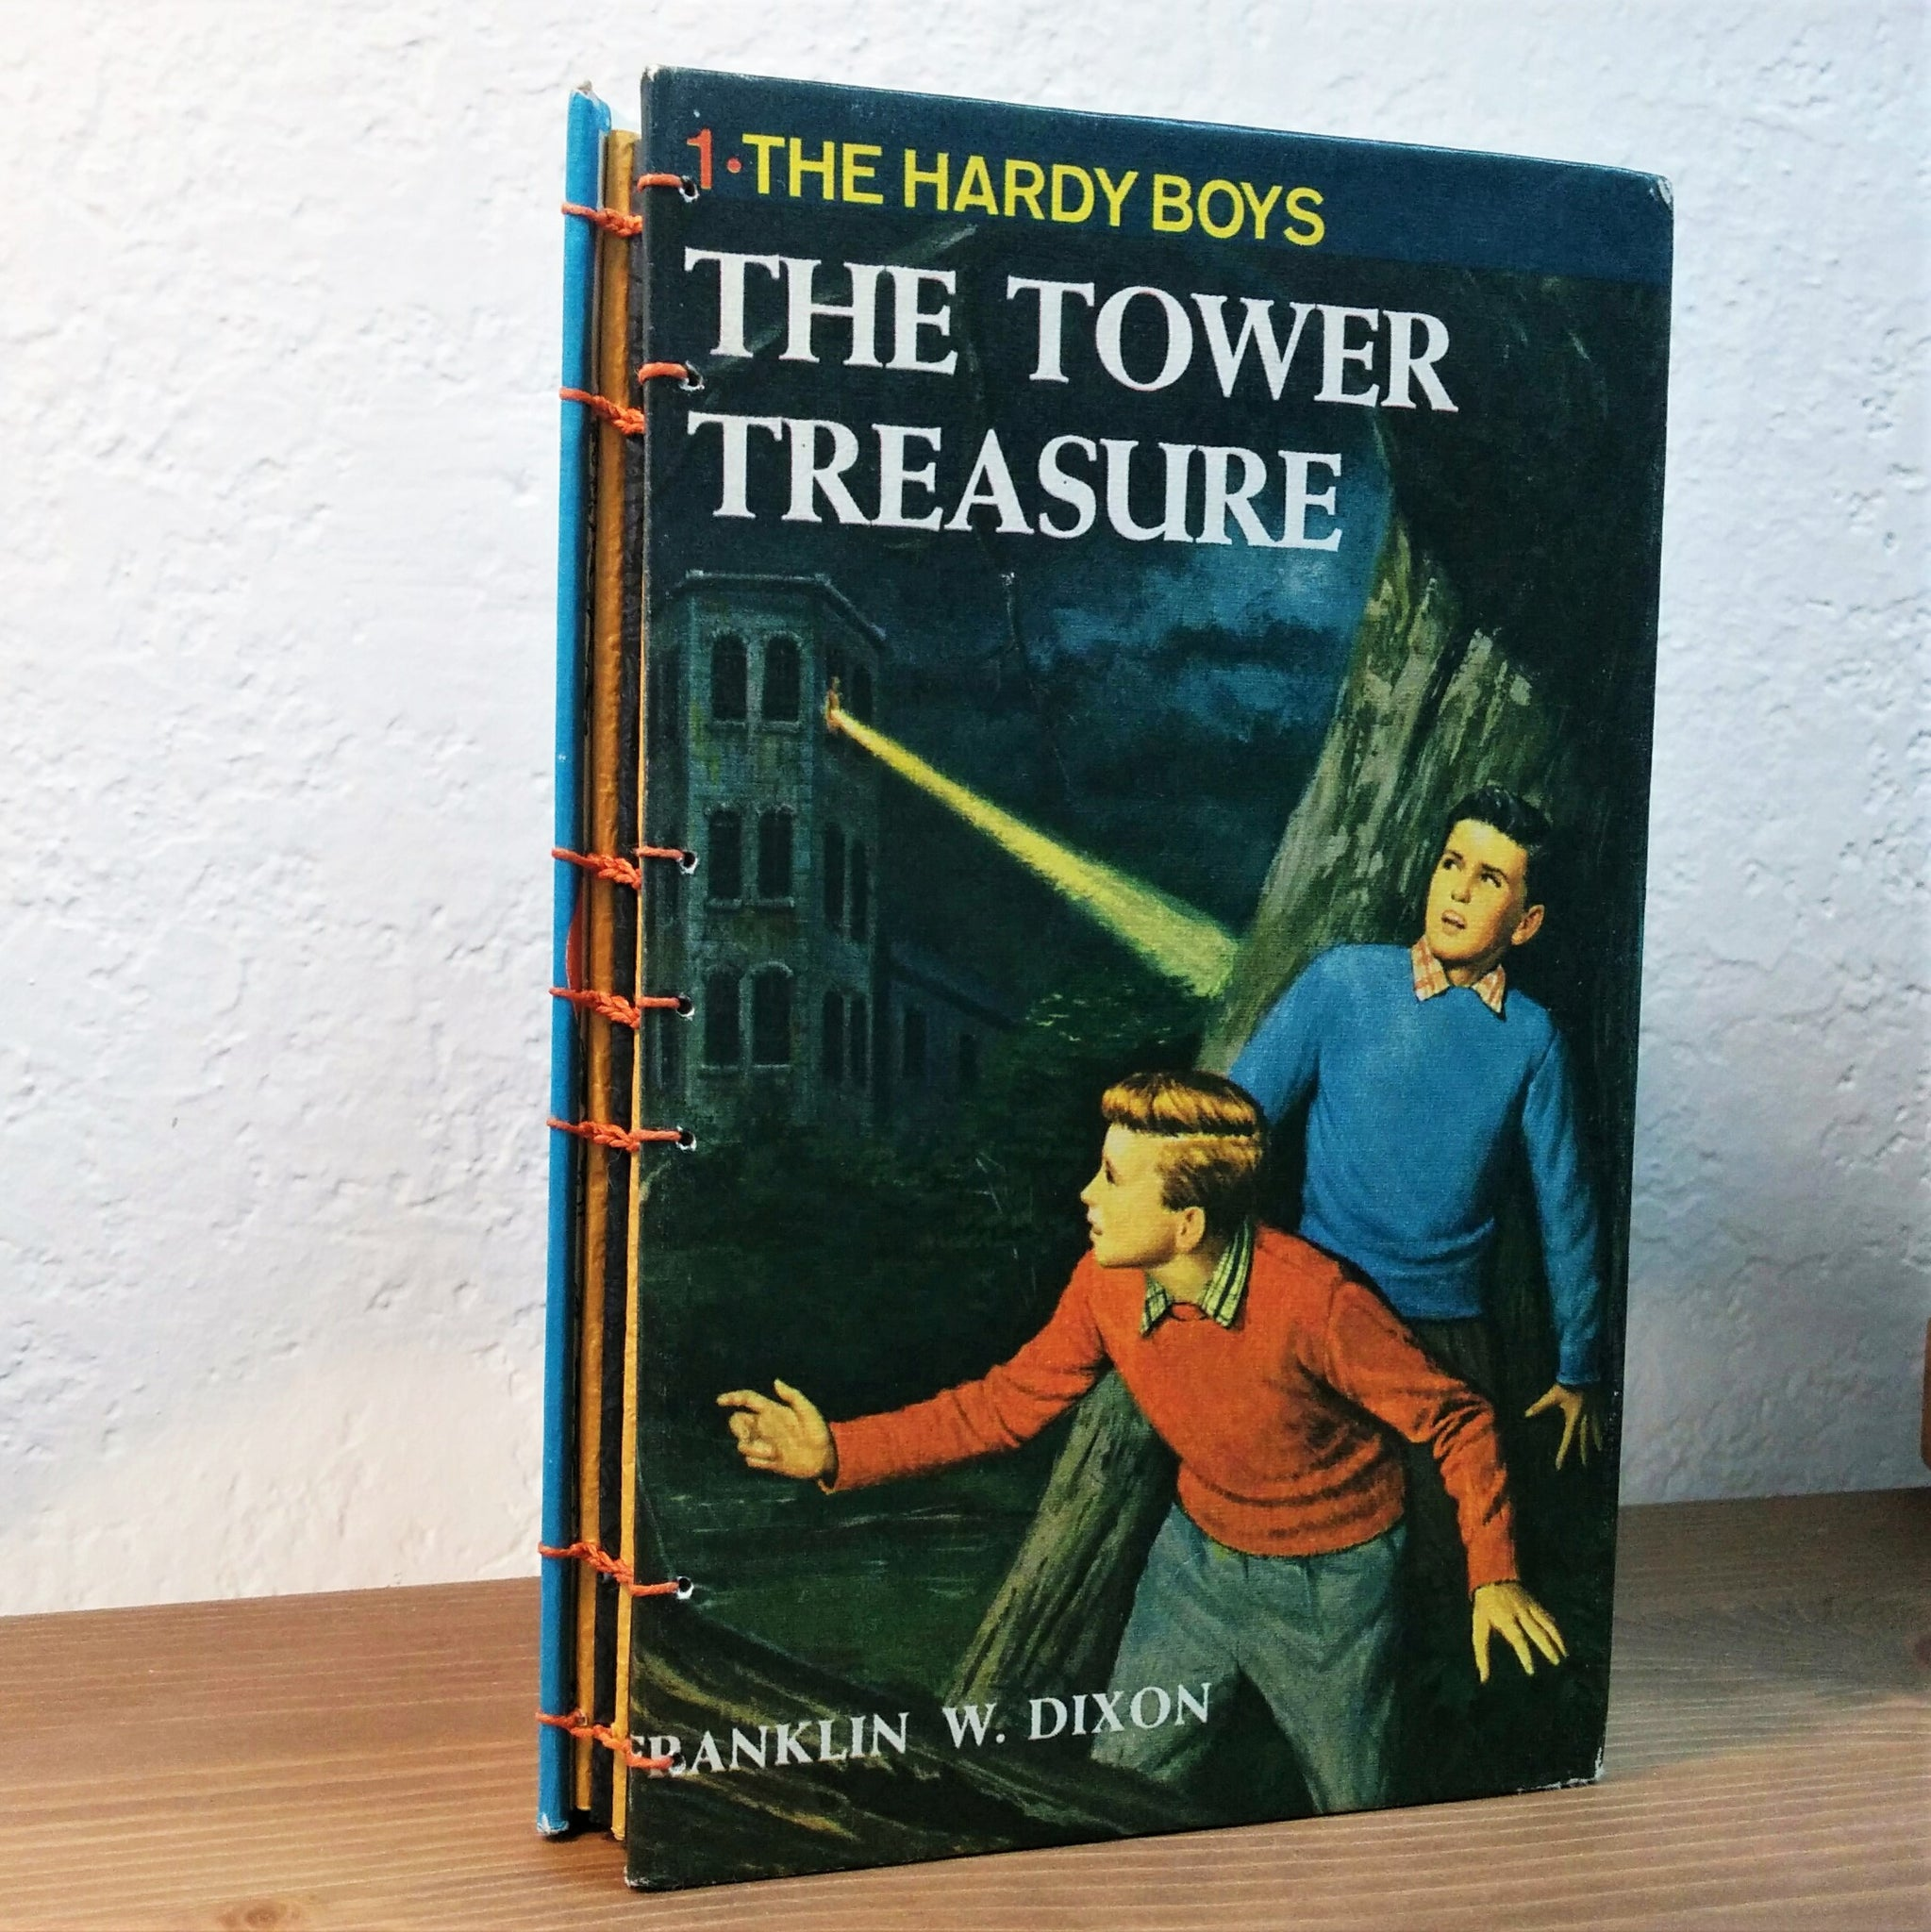 Journal/Sketchbook - Hardy Boys The Tower Treasure